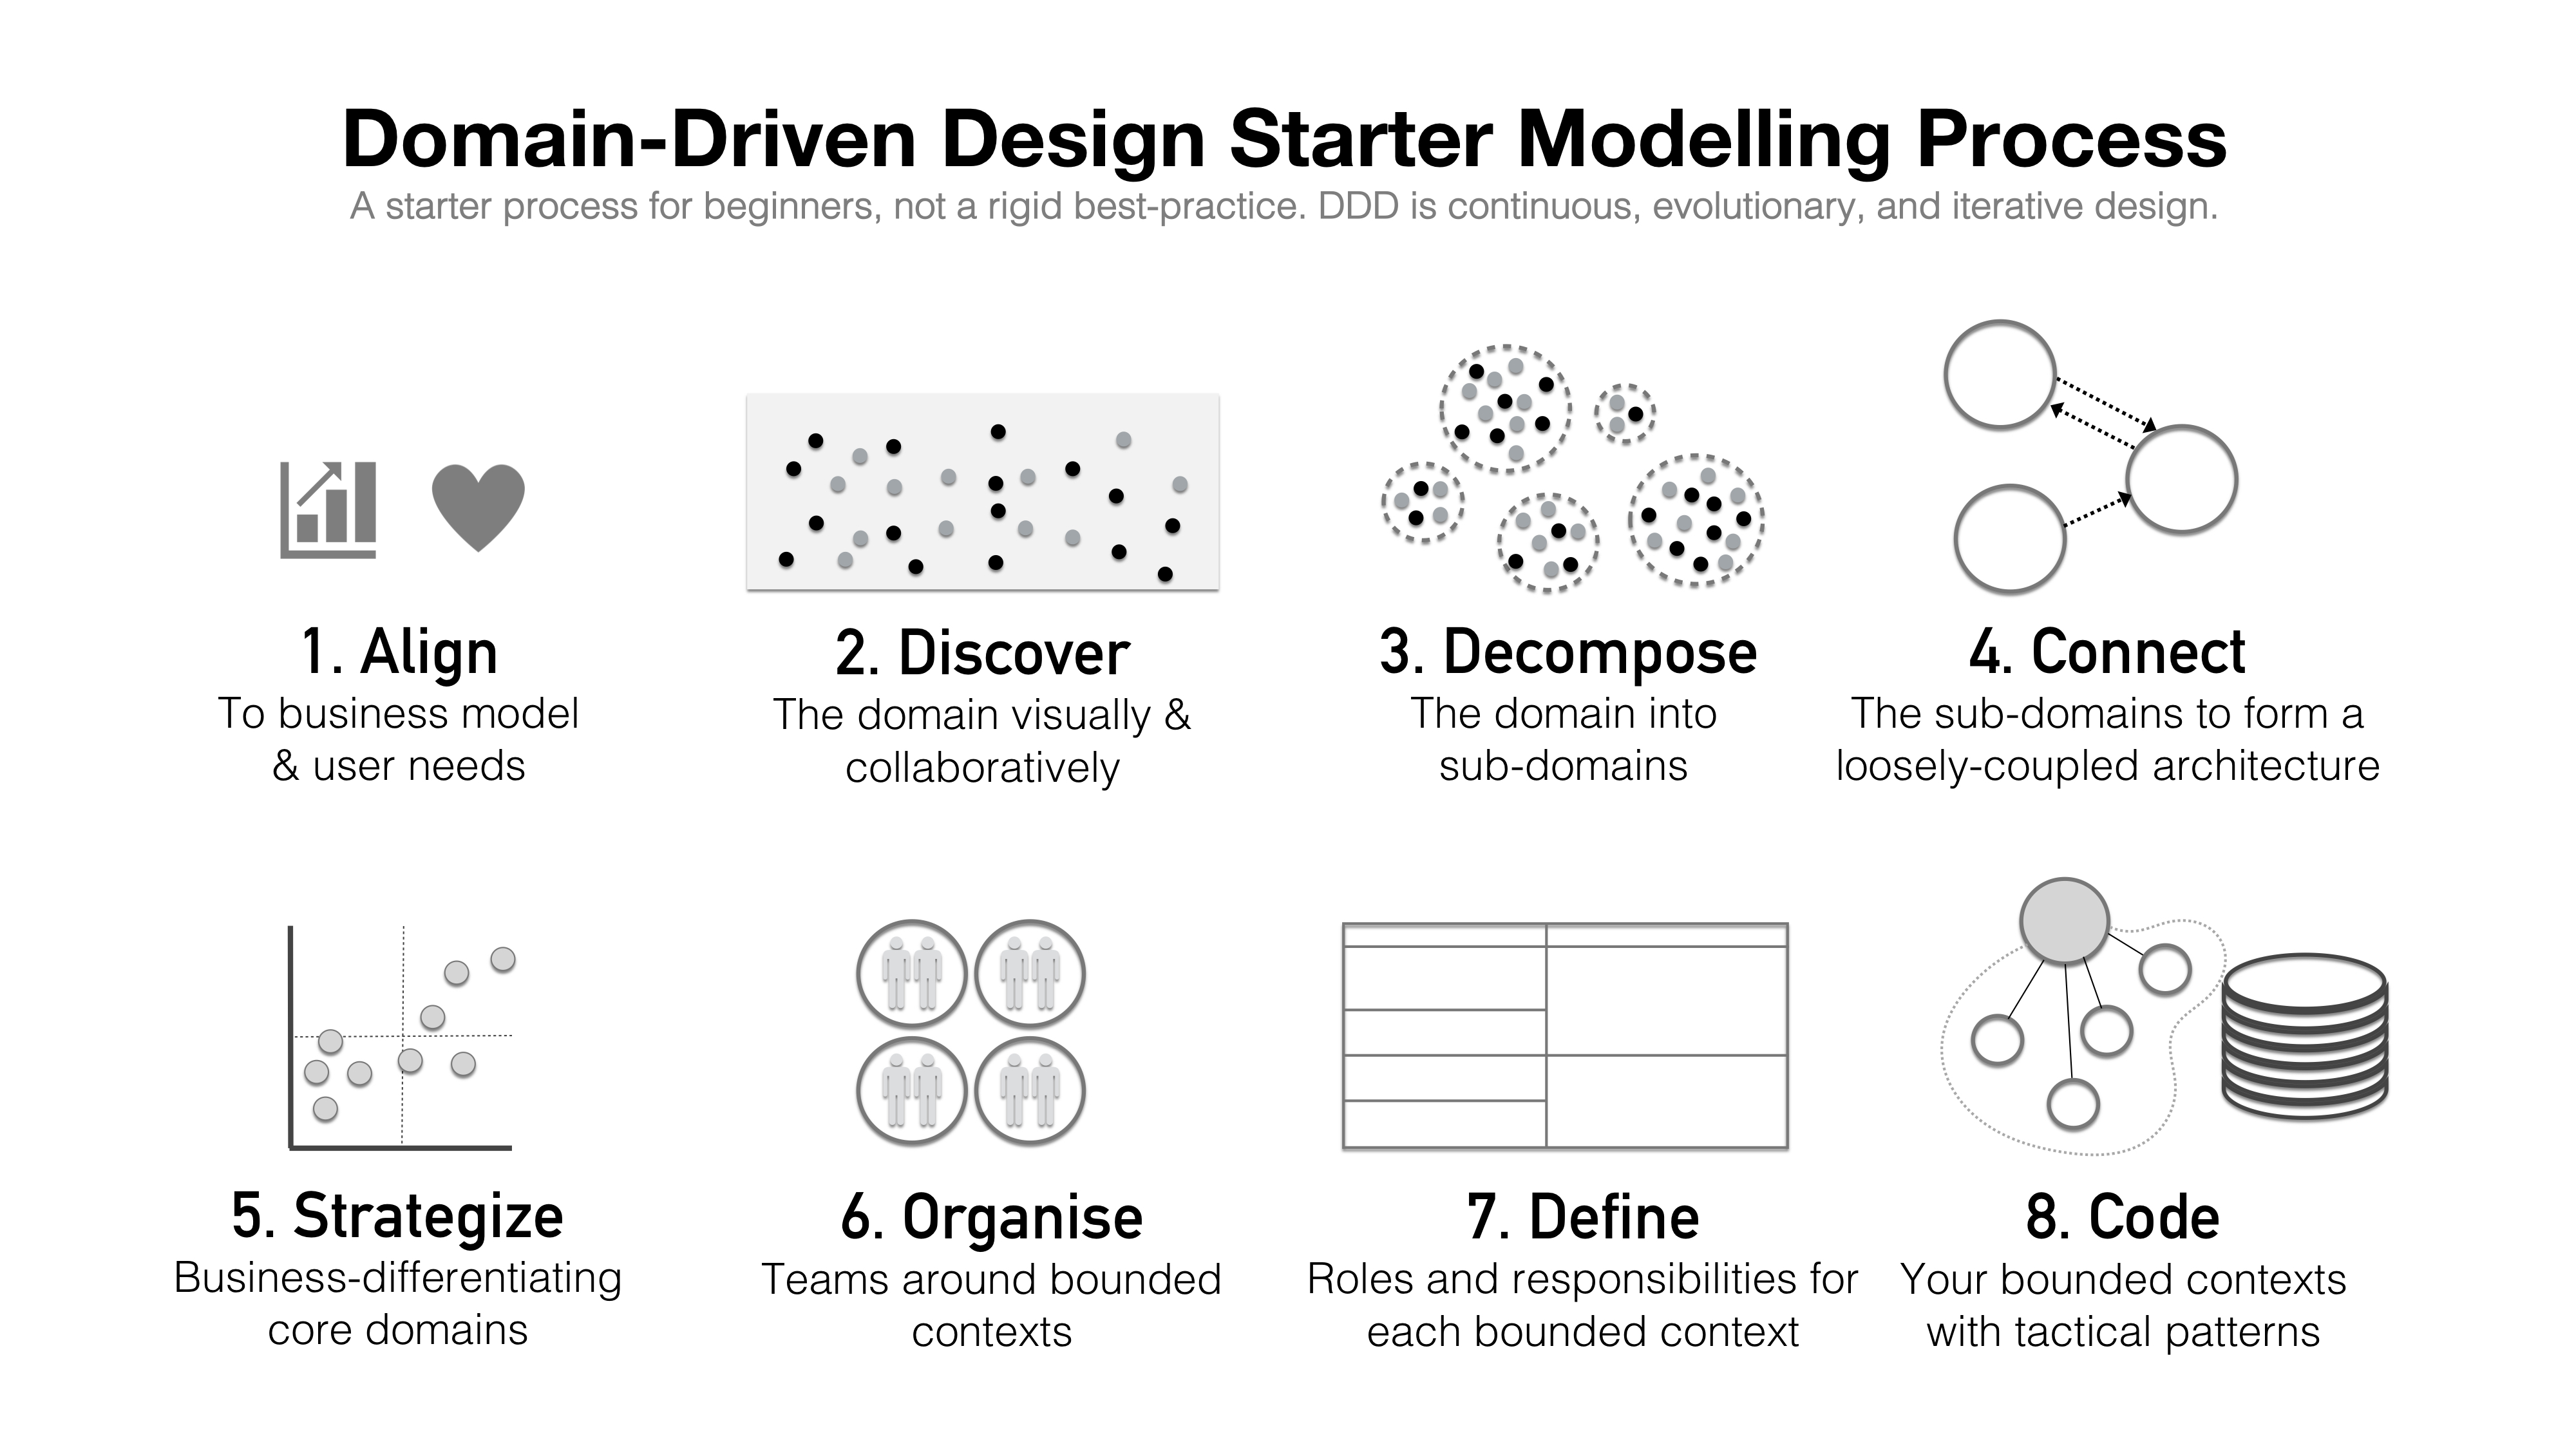 Domain-Driven Design Starter Modelling Process